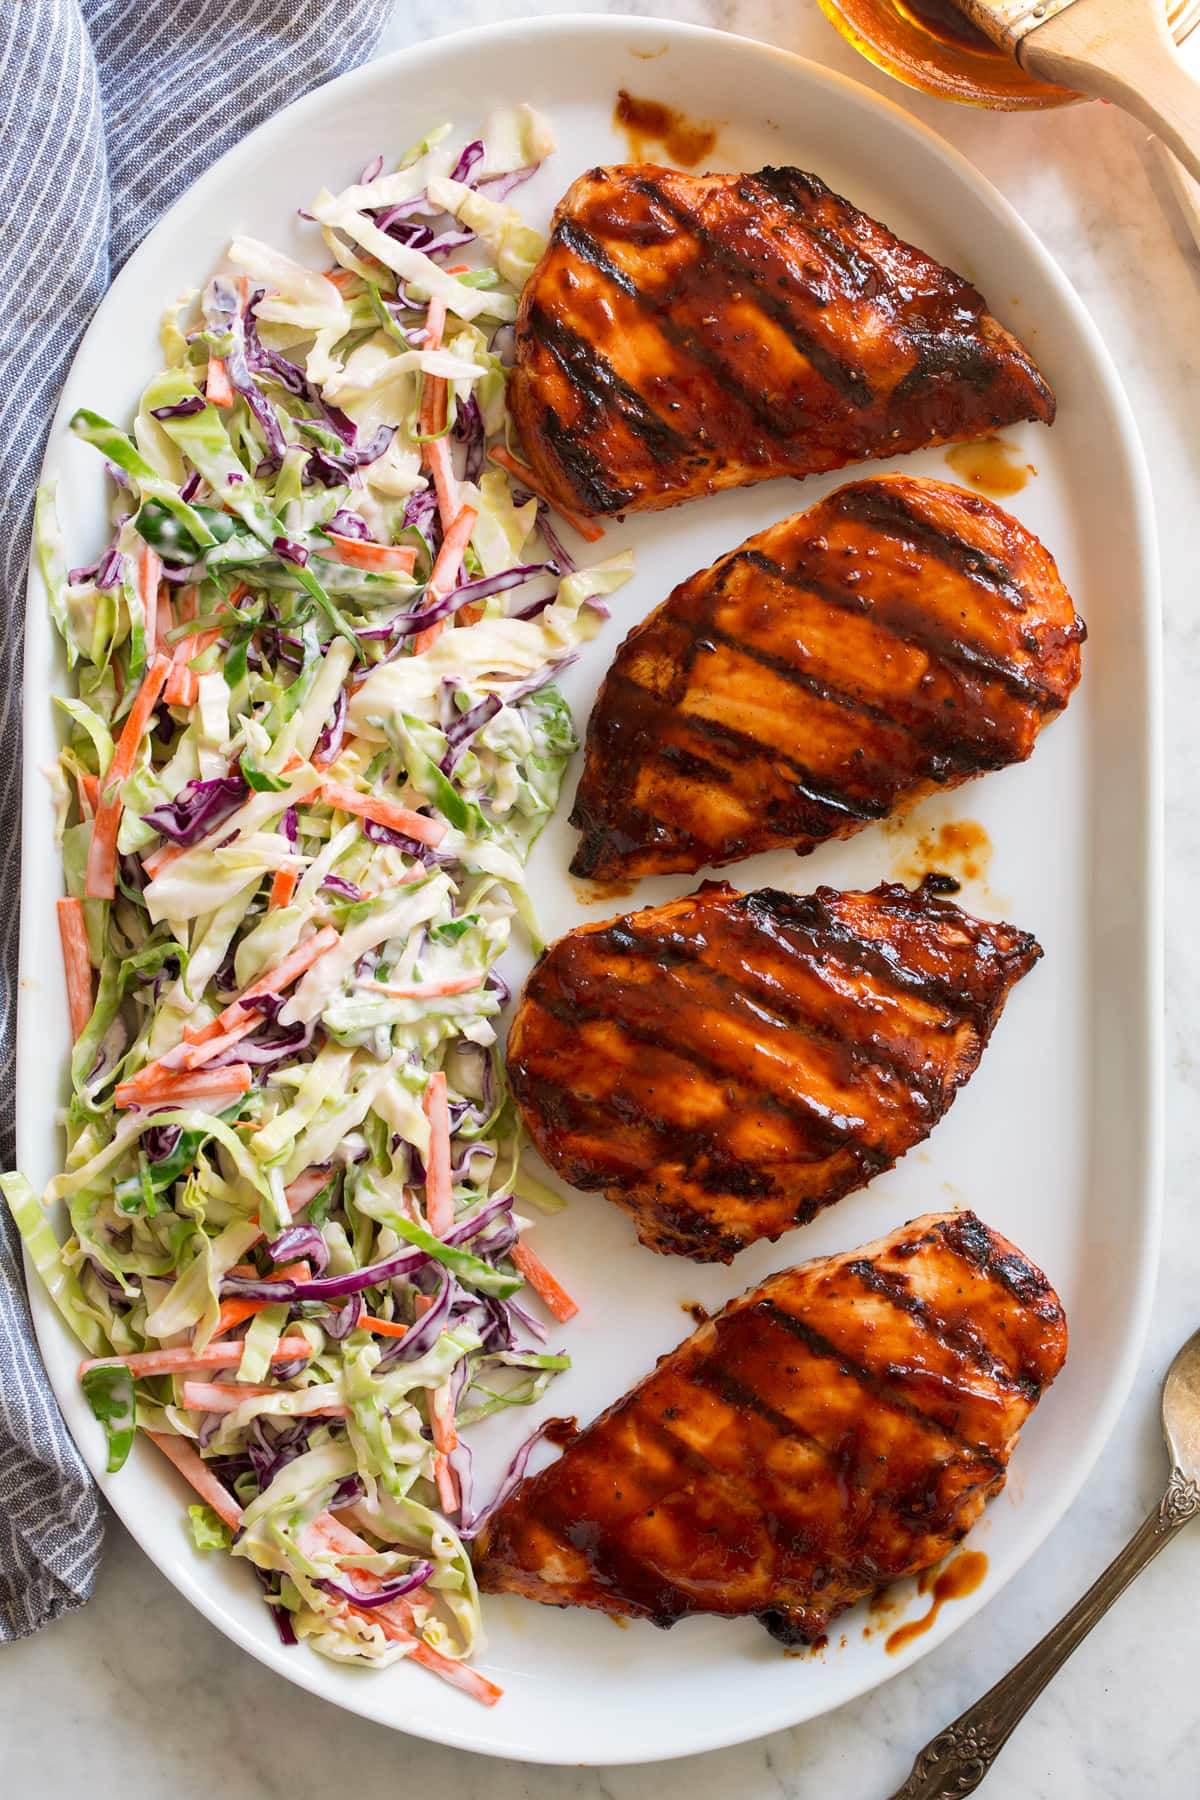 Overhead image of four grilled chicken breasts covered in bbq sauce on a platter with a side of coleslaw on the side of the platter.